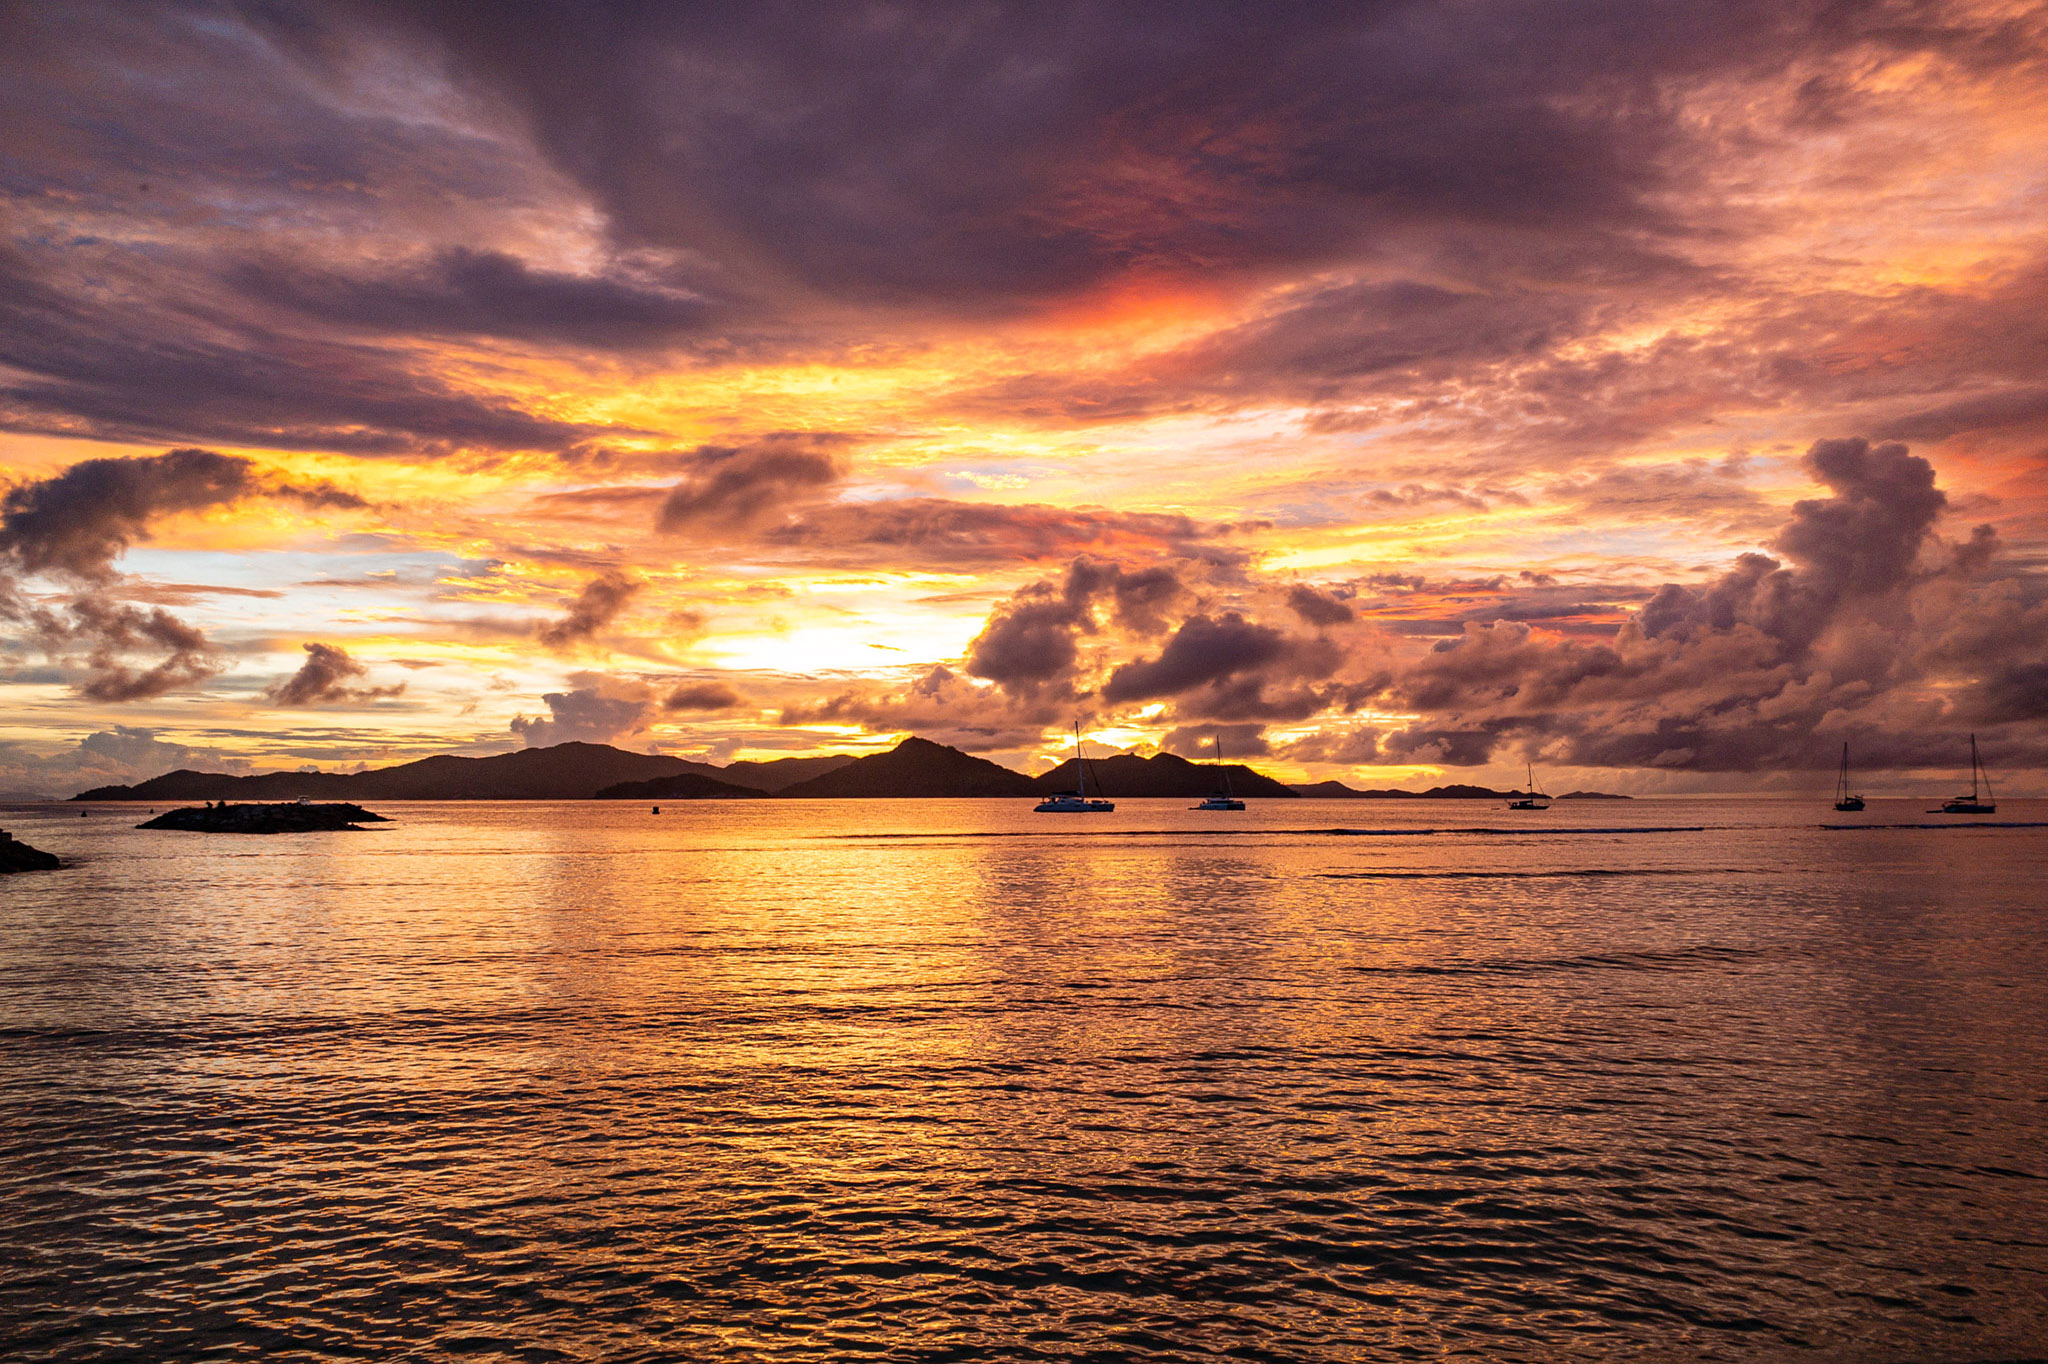 Sunset, La digue